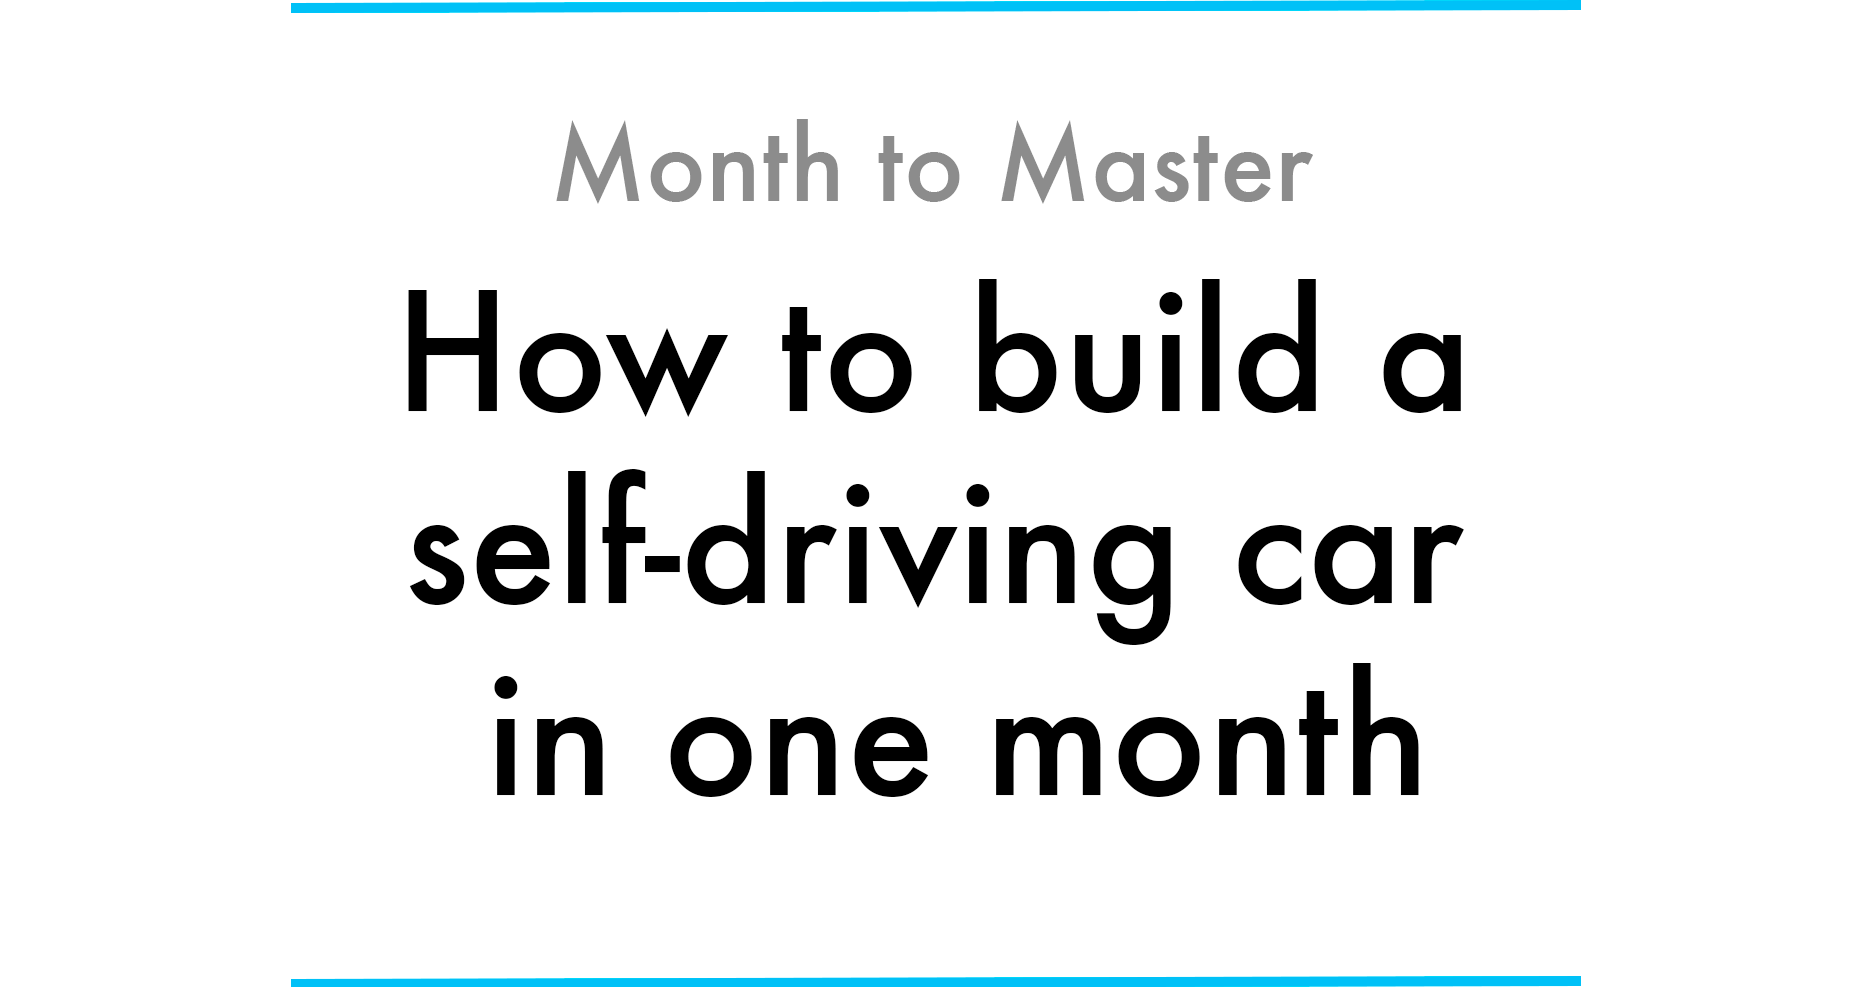 How to build a self-driving car in one month - Max Deutsch - Medium